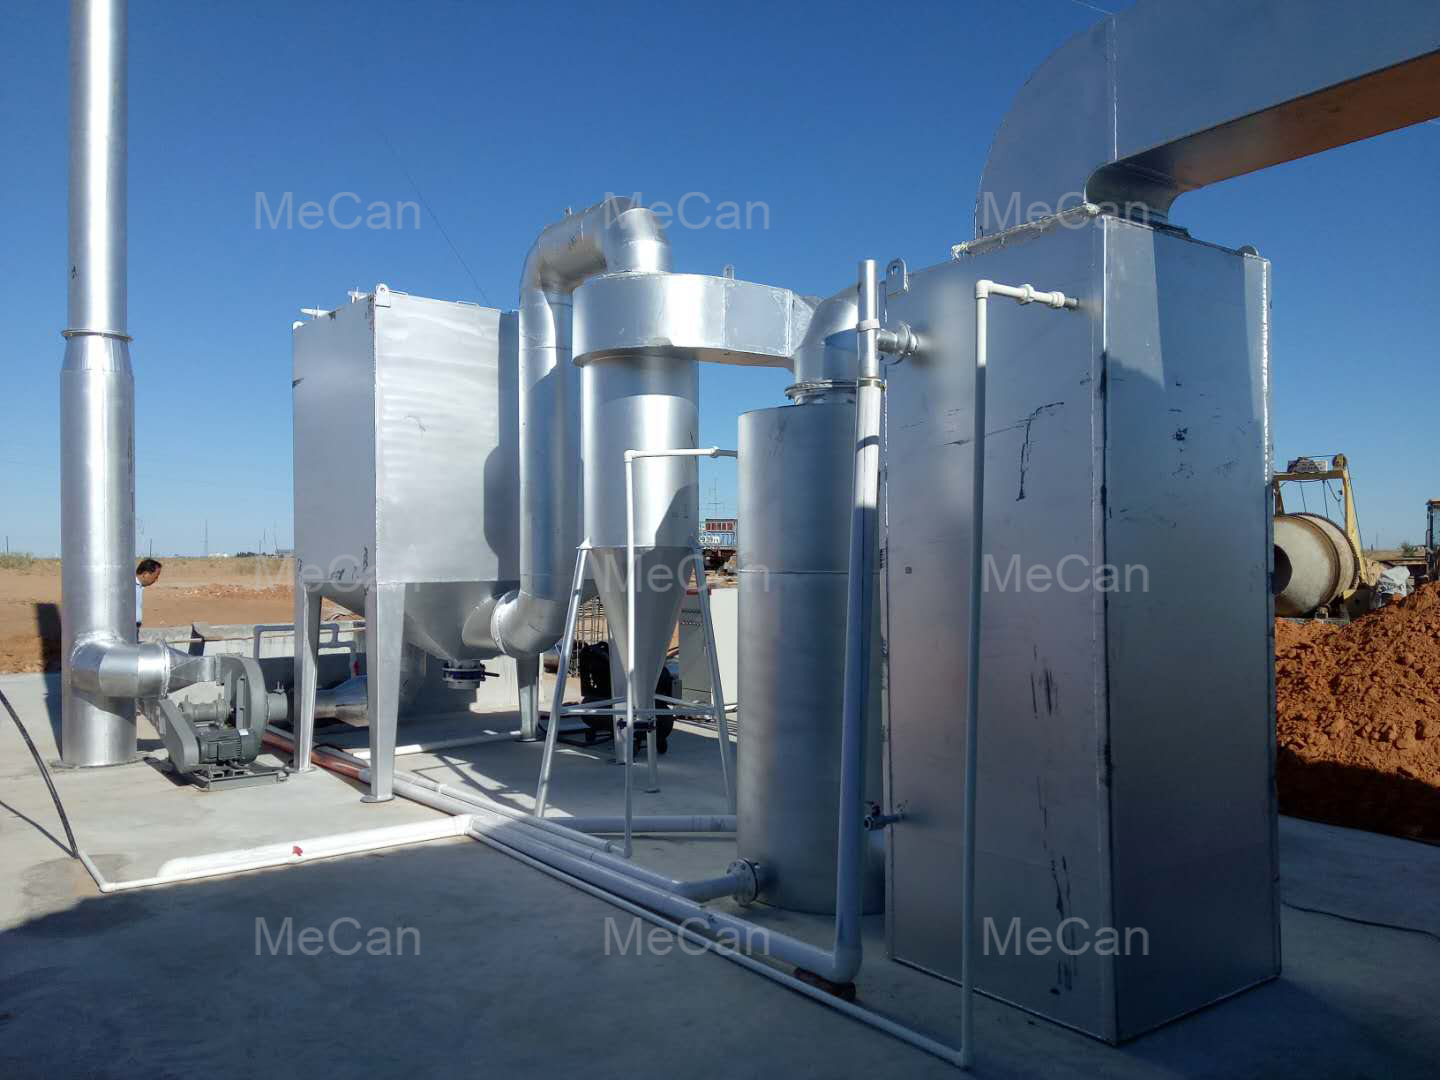 Medical Waste Incinerator with Enhanced Gas Scrubber Unit